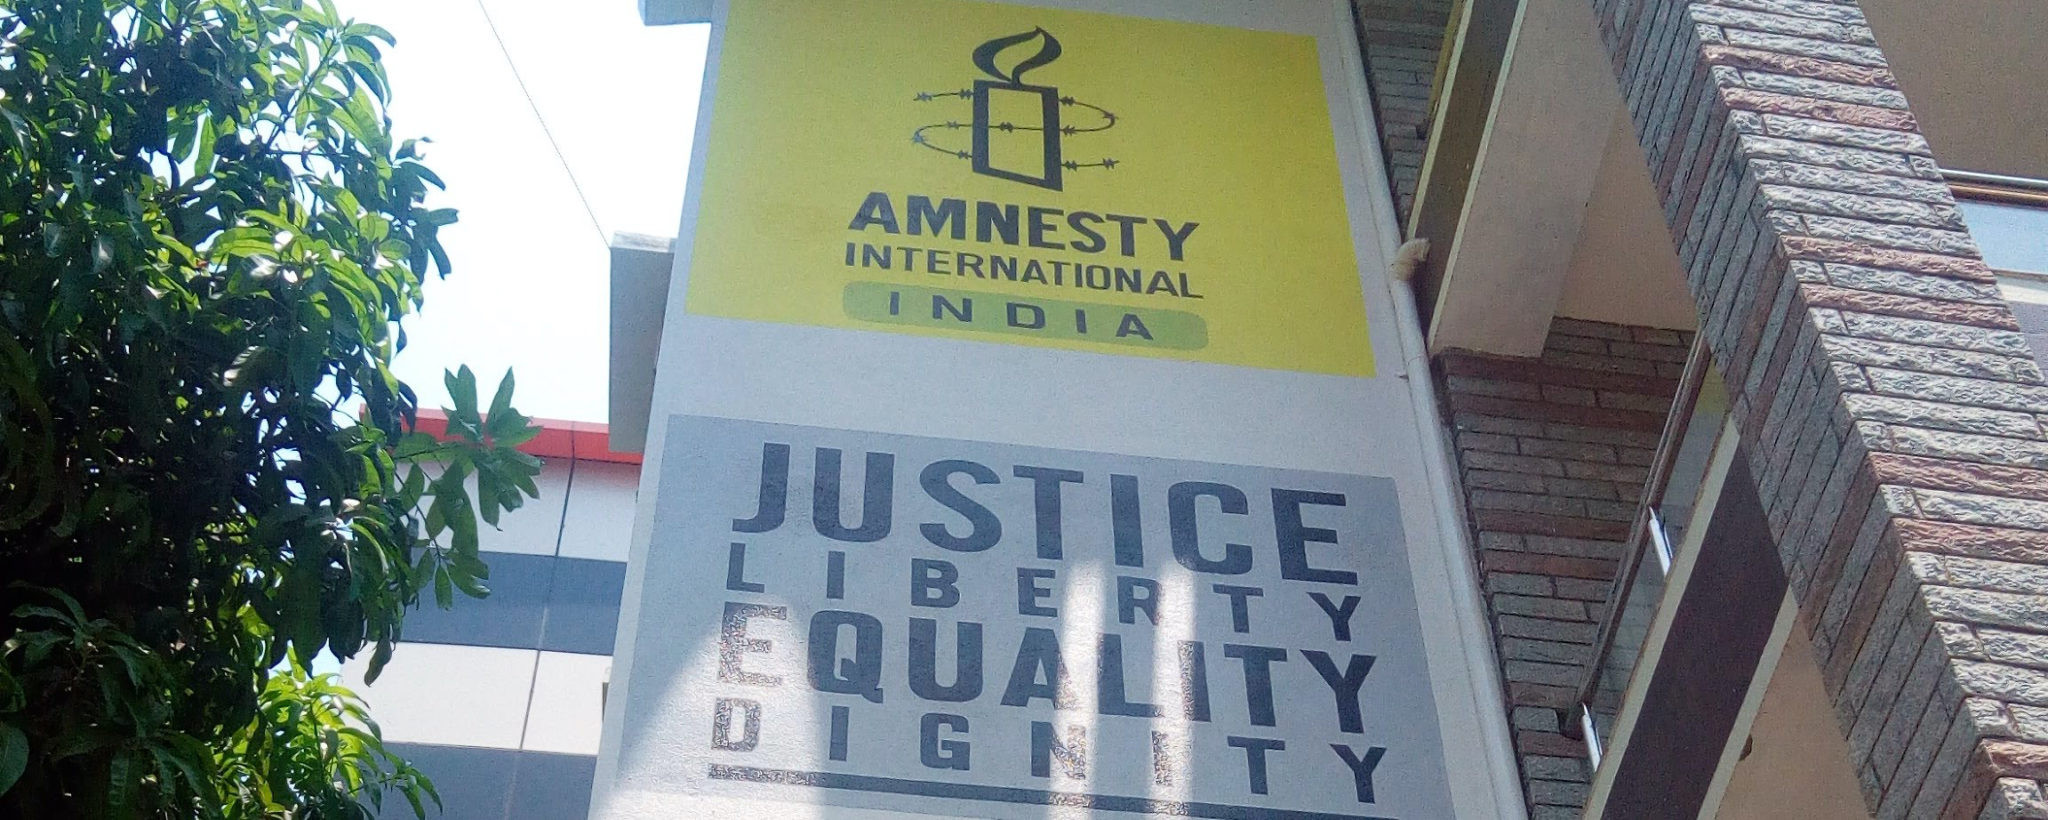 Photo Courtesy: Amnesty International India